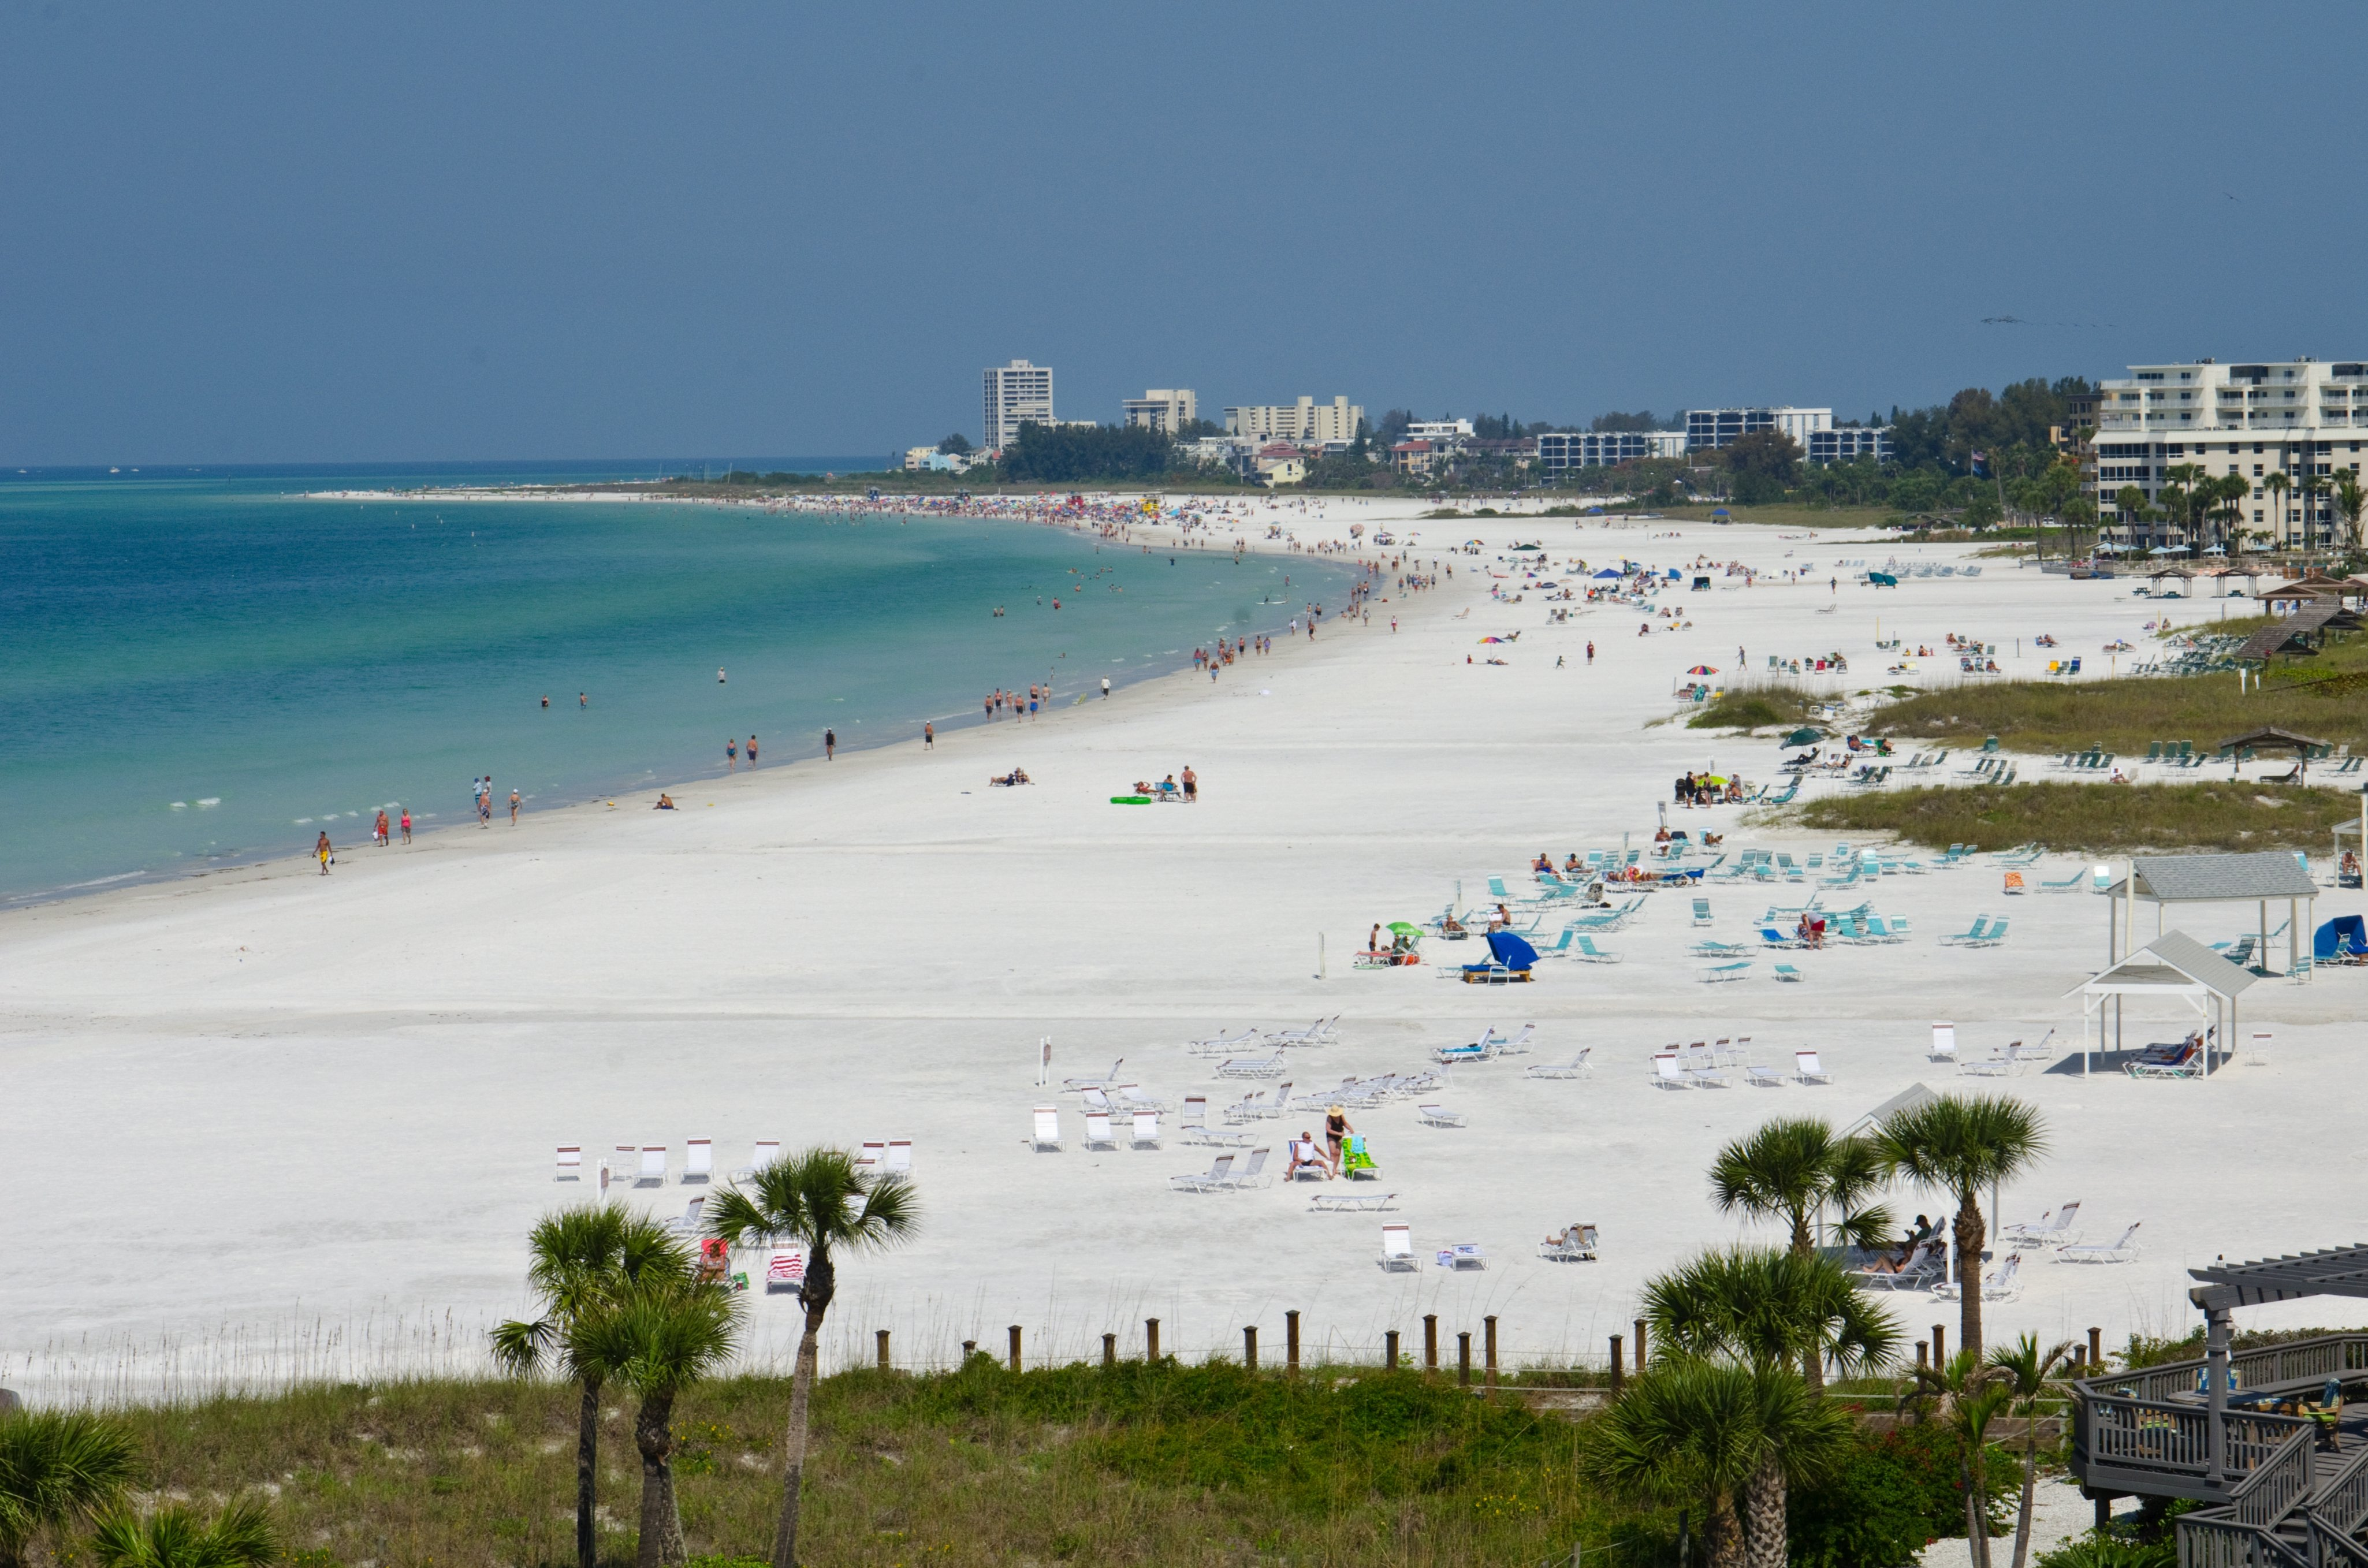 Crescent Beach, Siesta Key, Sarasota, Florida